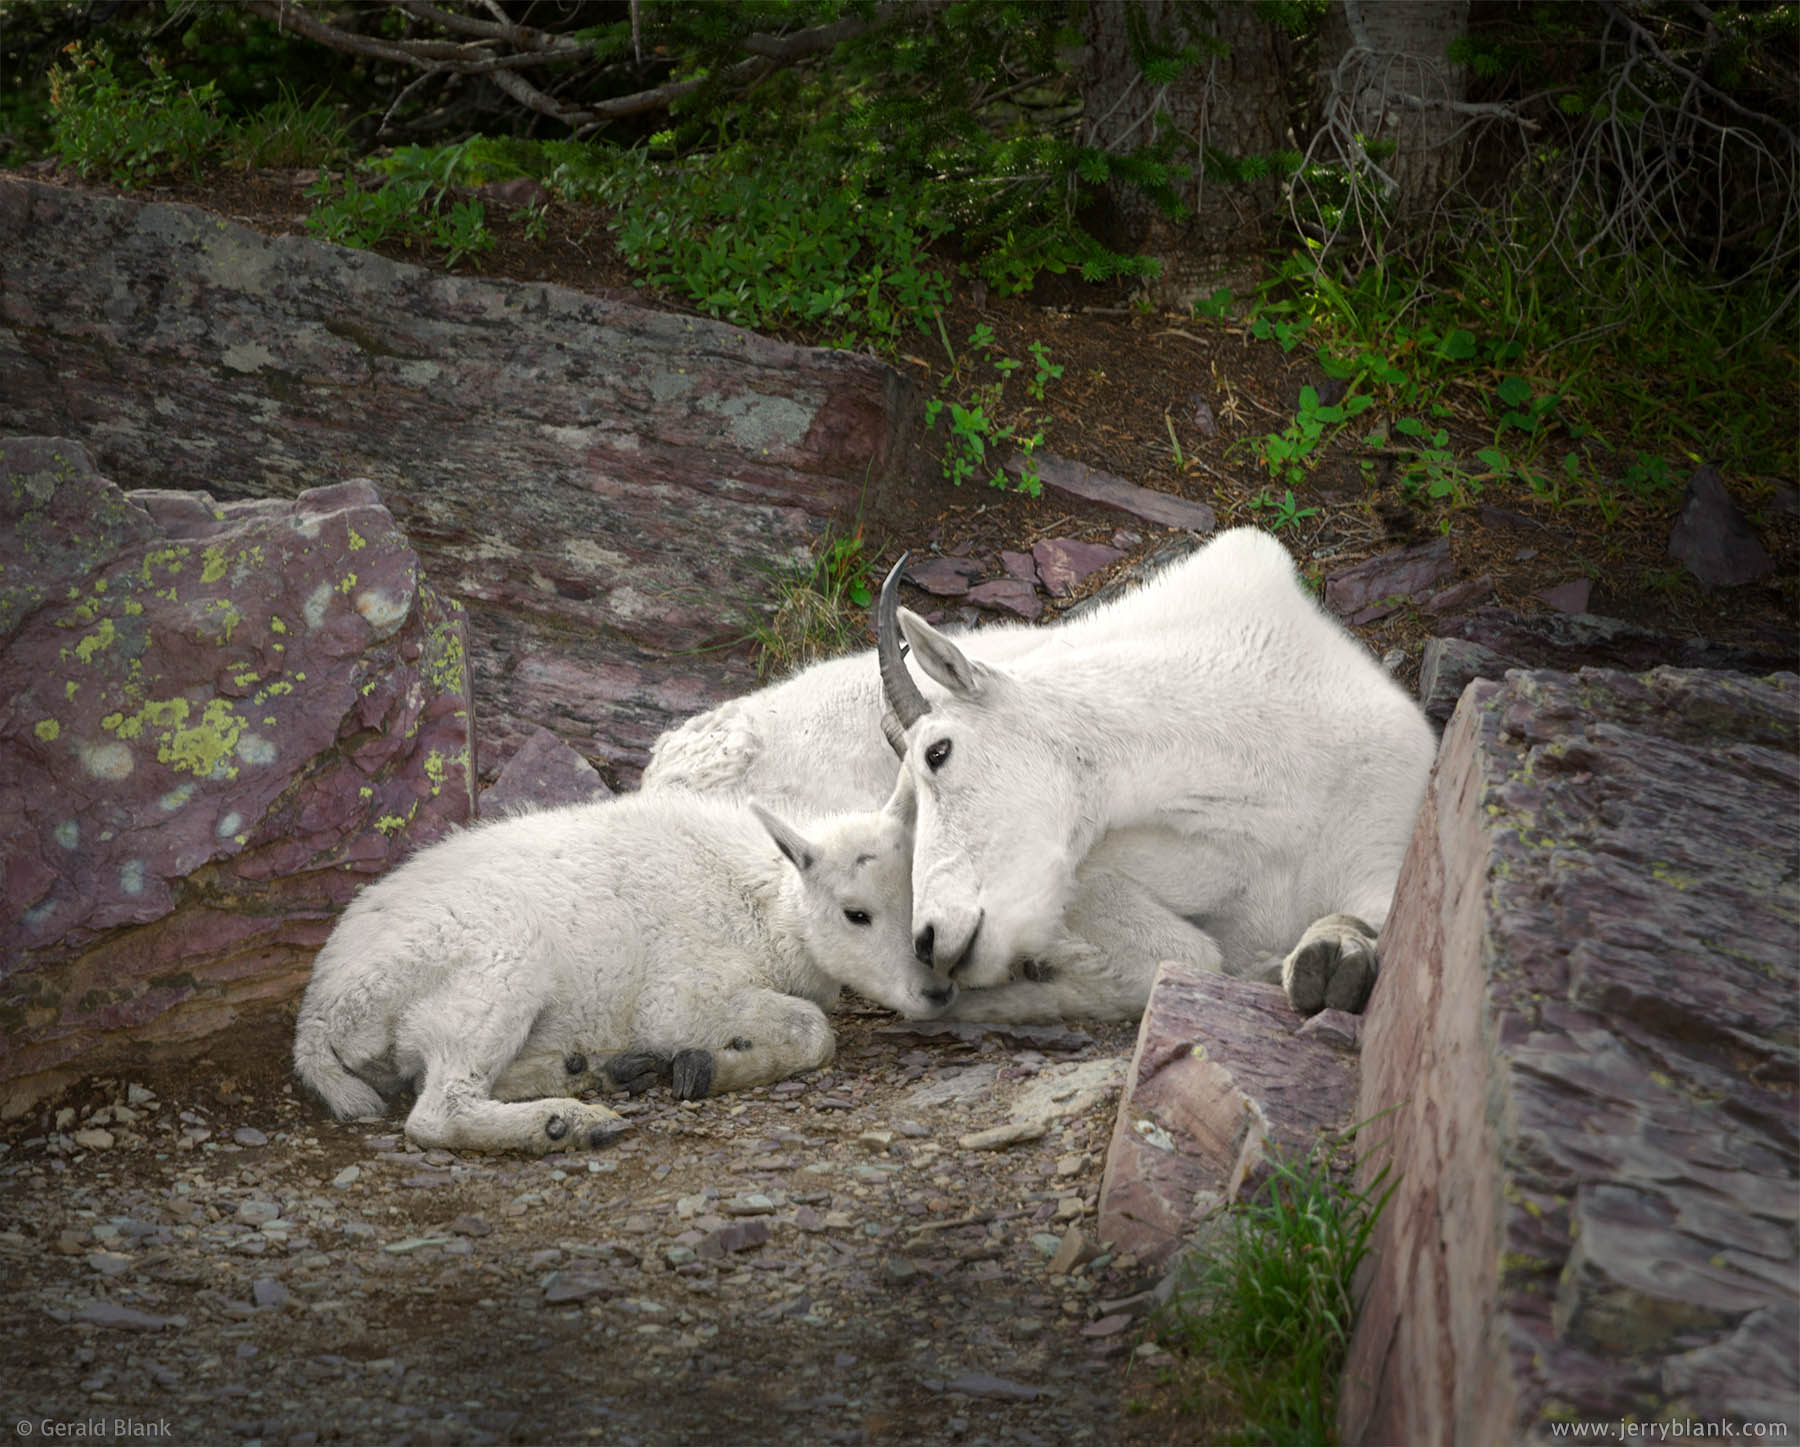 #25570 - A mountain goat kid rests with its mother in the shade on a summer afternoon, in Glacier National Park, Montana - wildlife photo by Jerry Blank